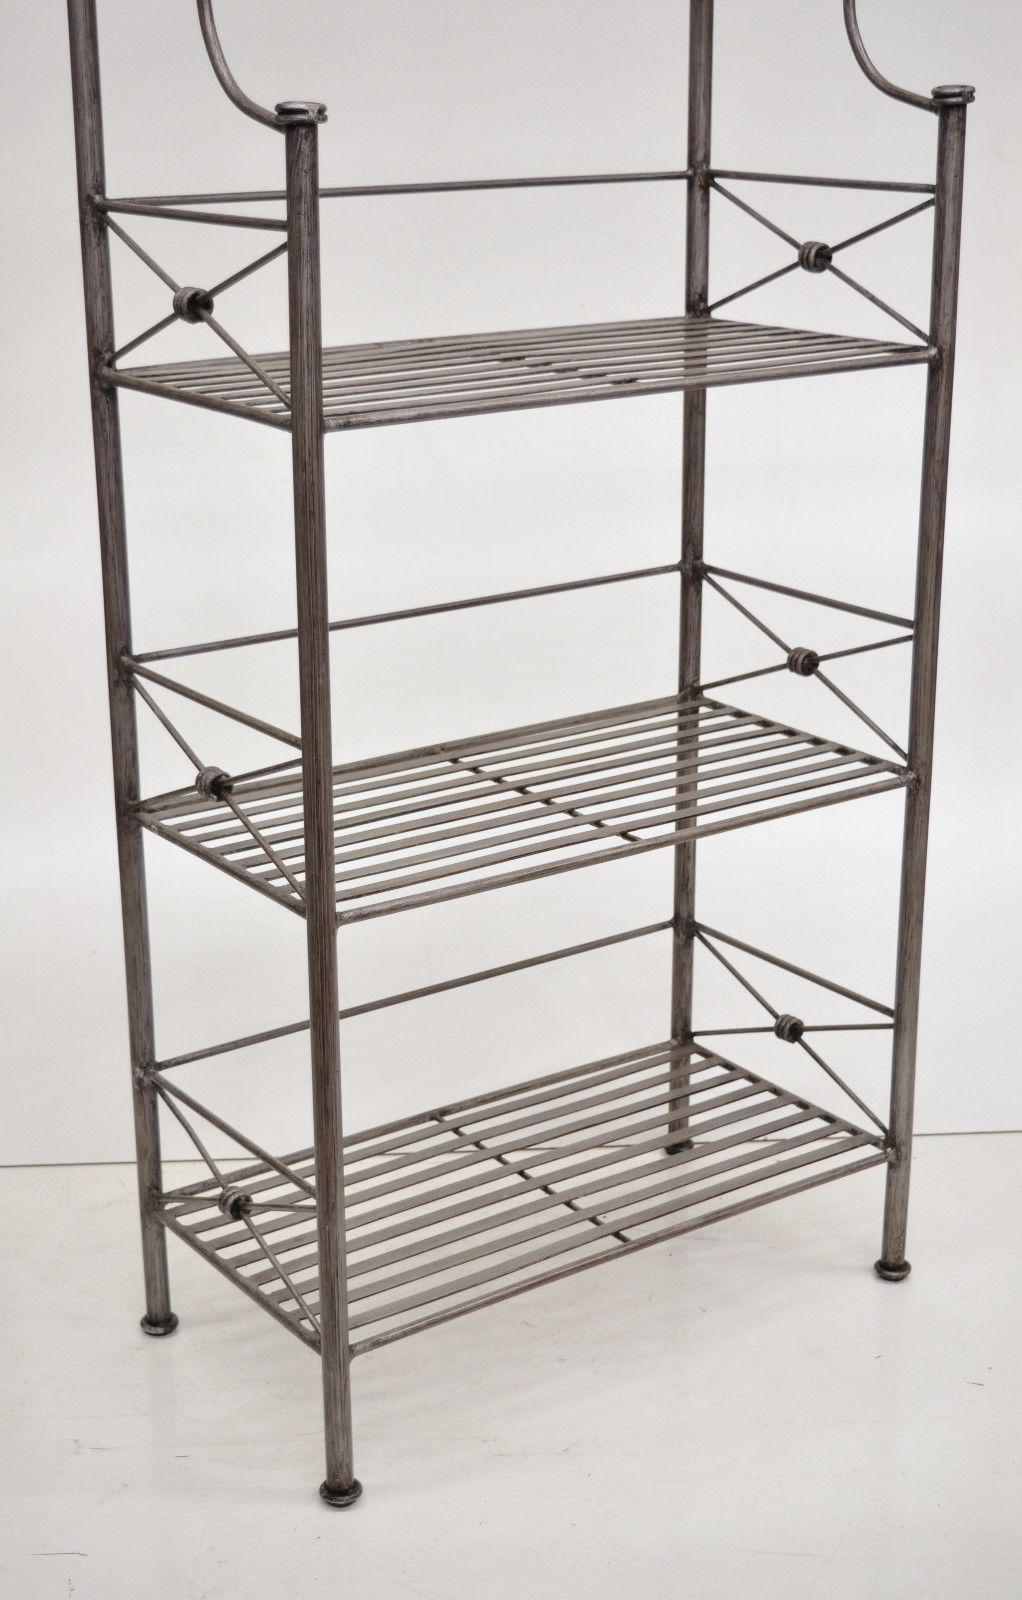 pier 1 medici collection pewter iron bakers rack shelf bathroom stand etagere